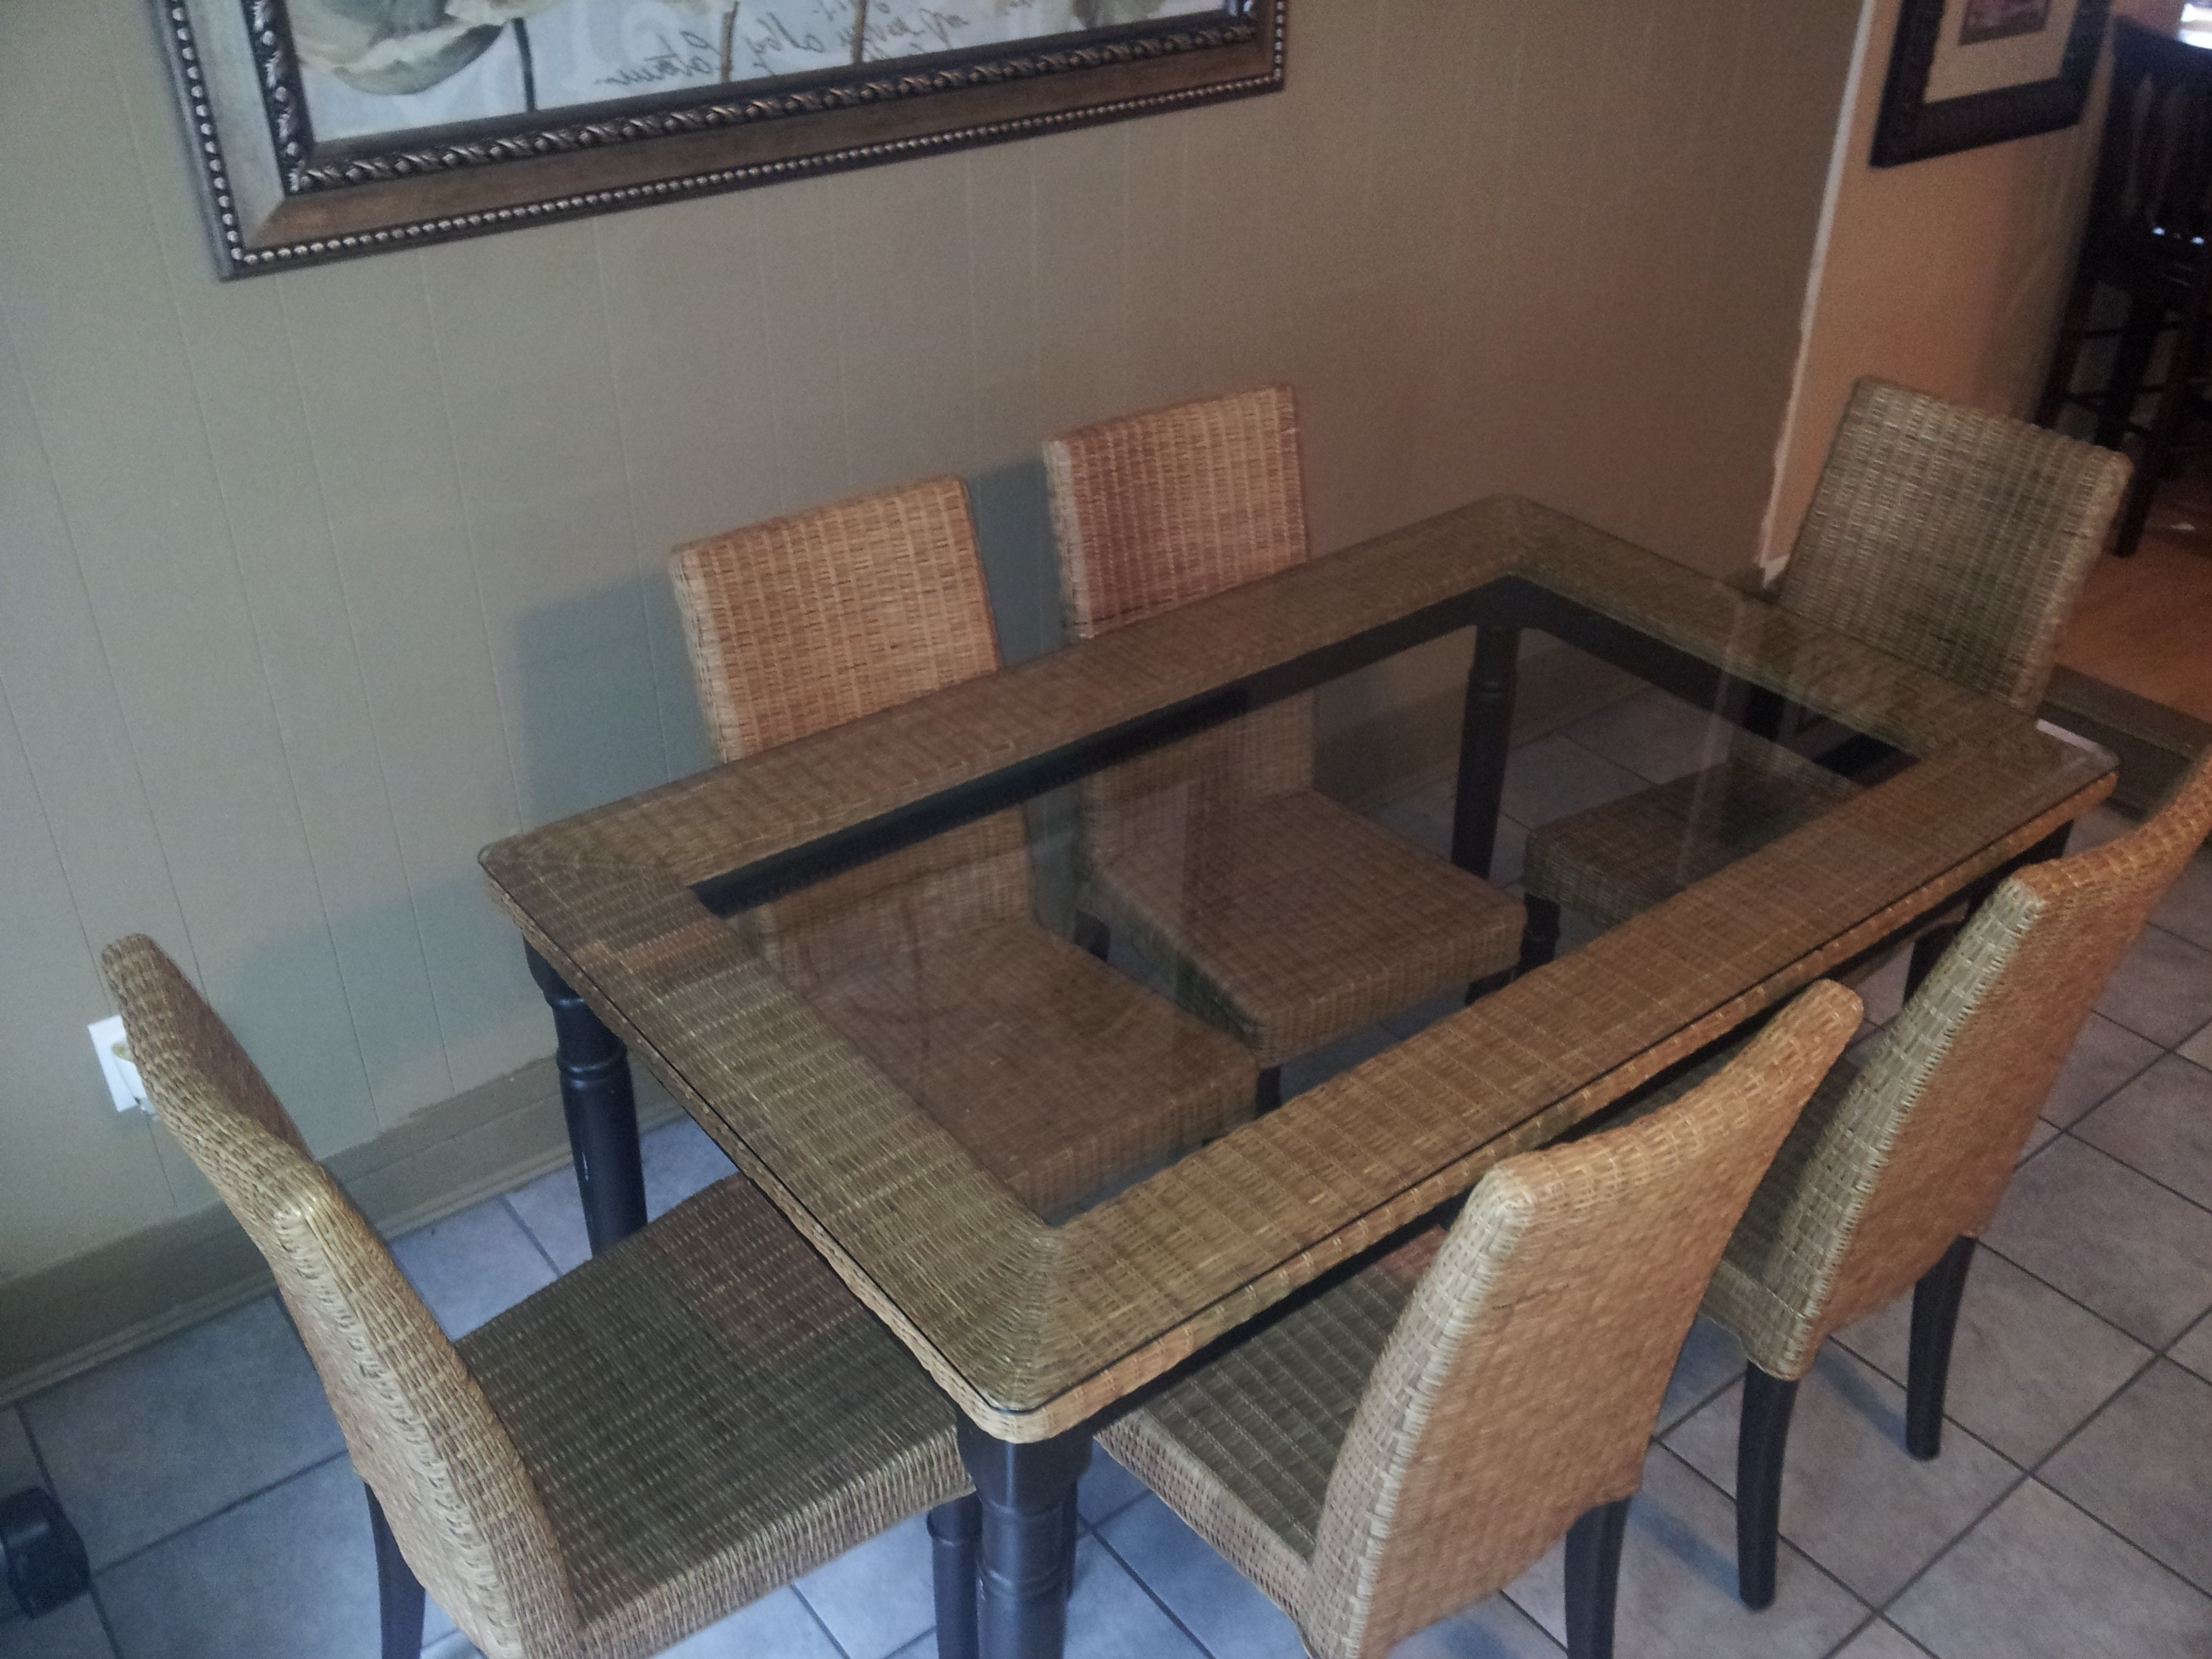 Preferred Best Powerful Photos Wicker Dining Table With Glass Top On A Budget Pertaining To Wicker And Glass Dining Tables (View 5 of 25)